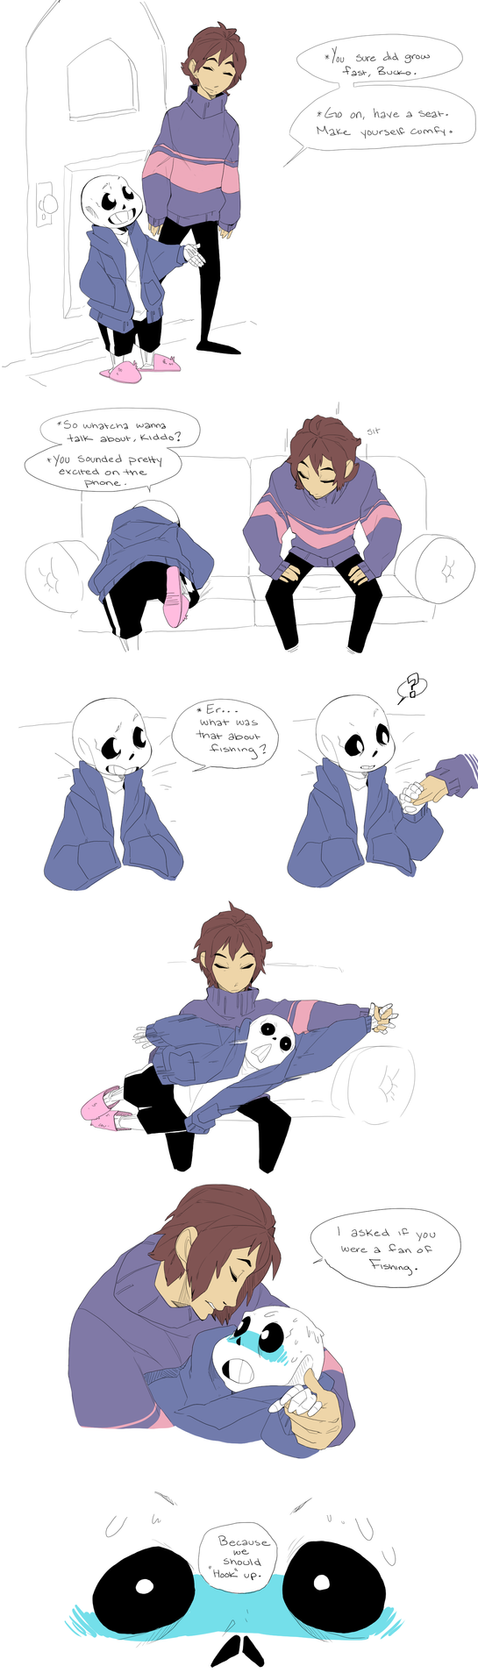 Fishing undertale by adzze on deviantart for Fish pick up lines